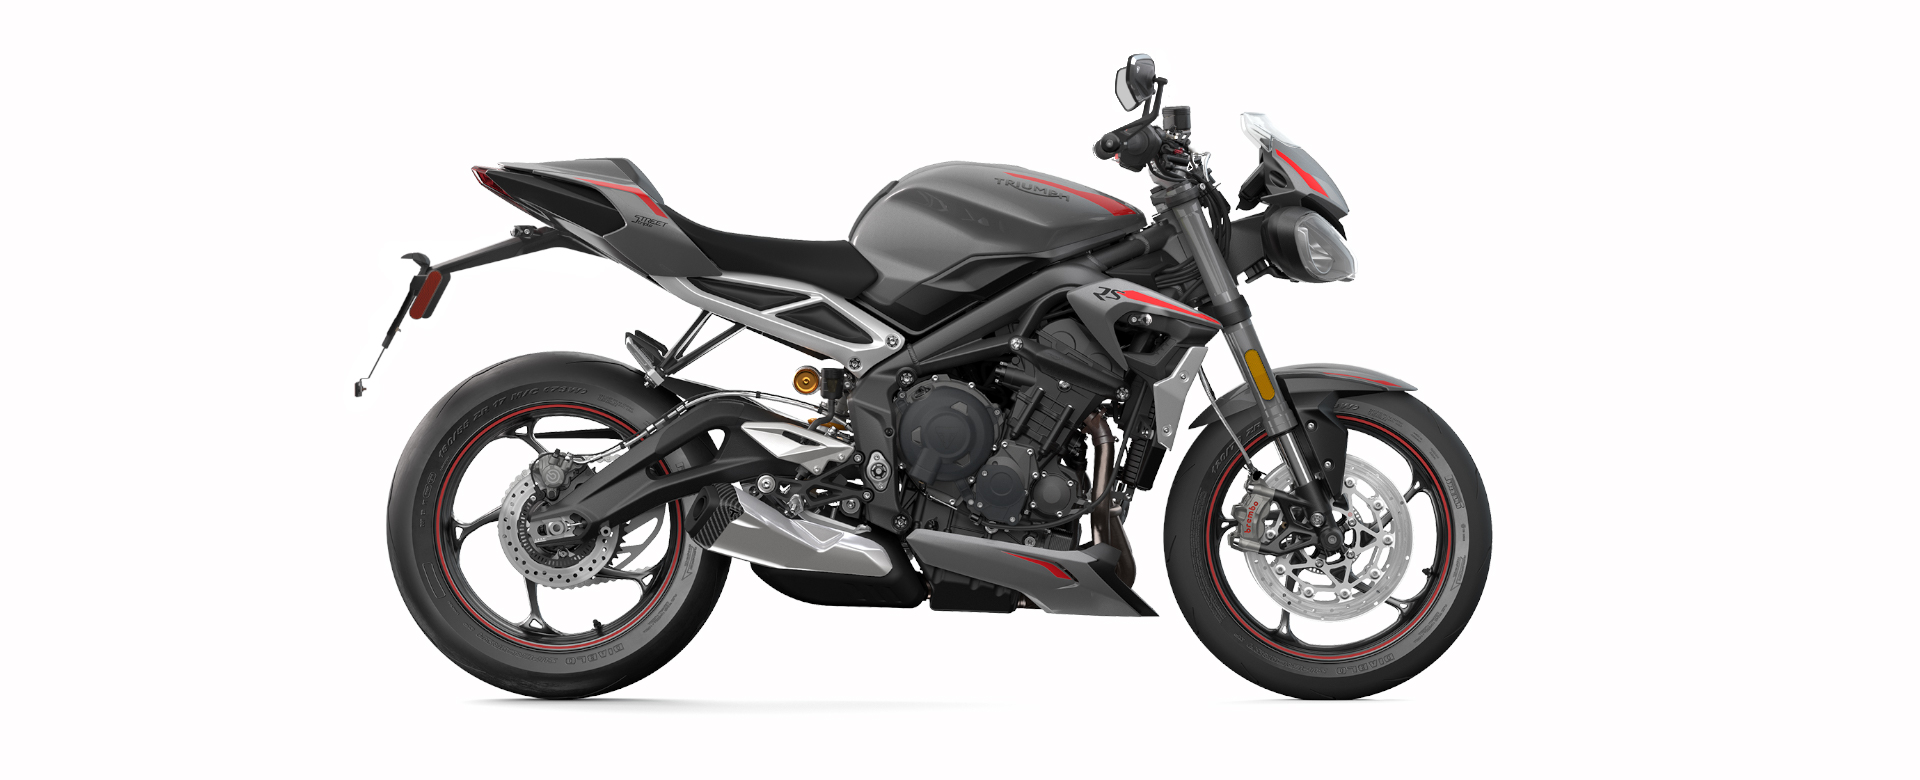 Triumph Street Triple RS side view with white background